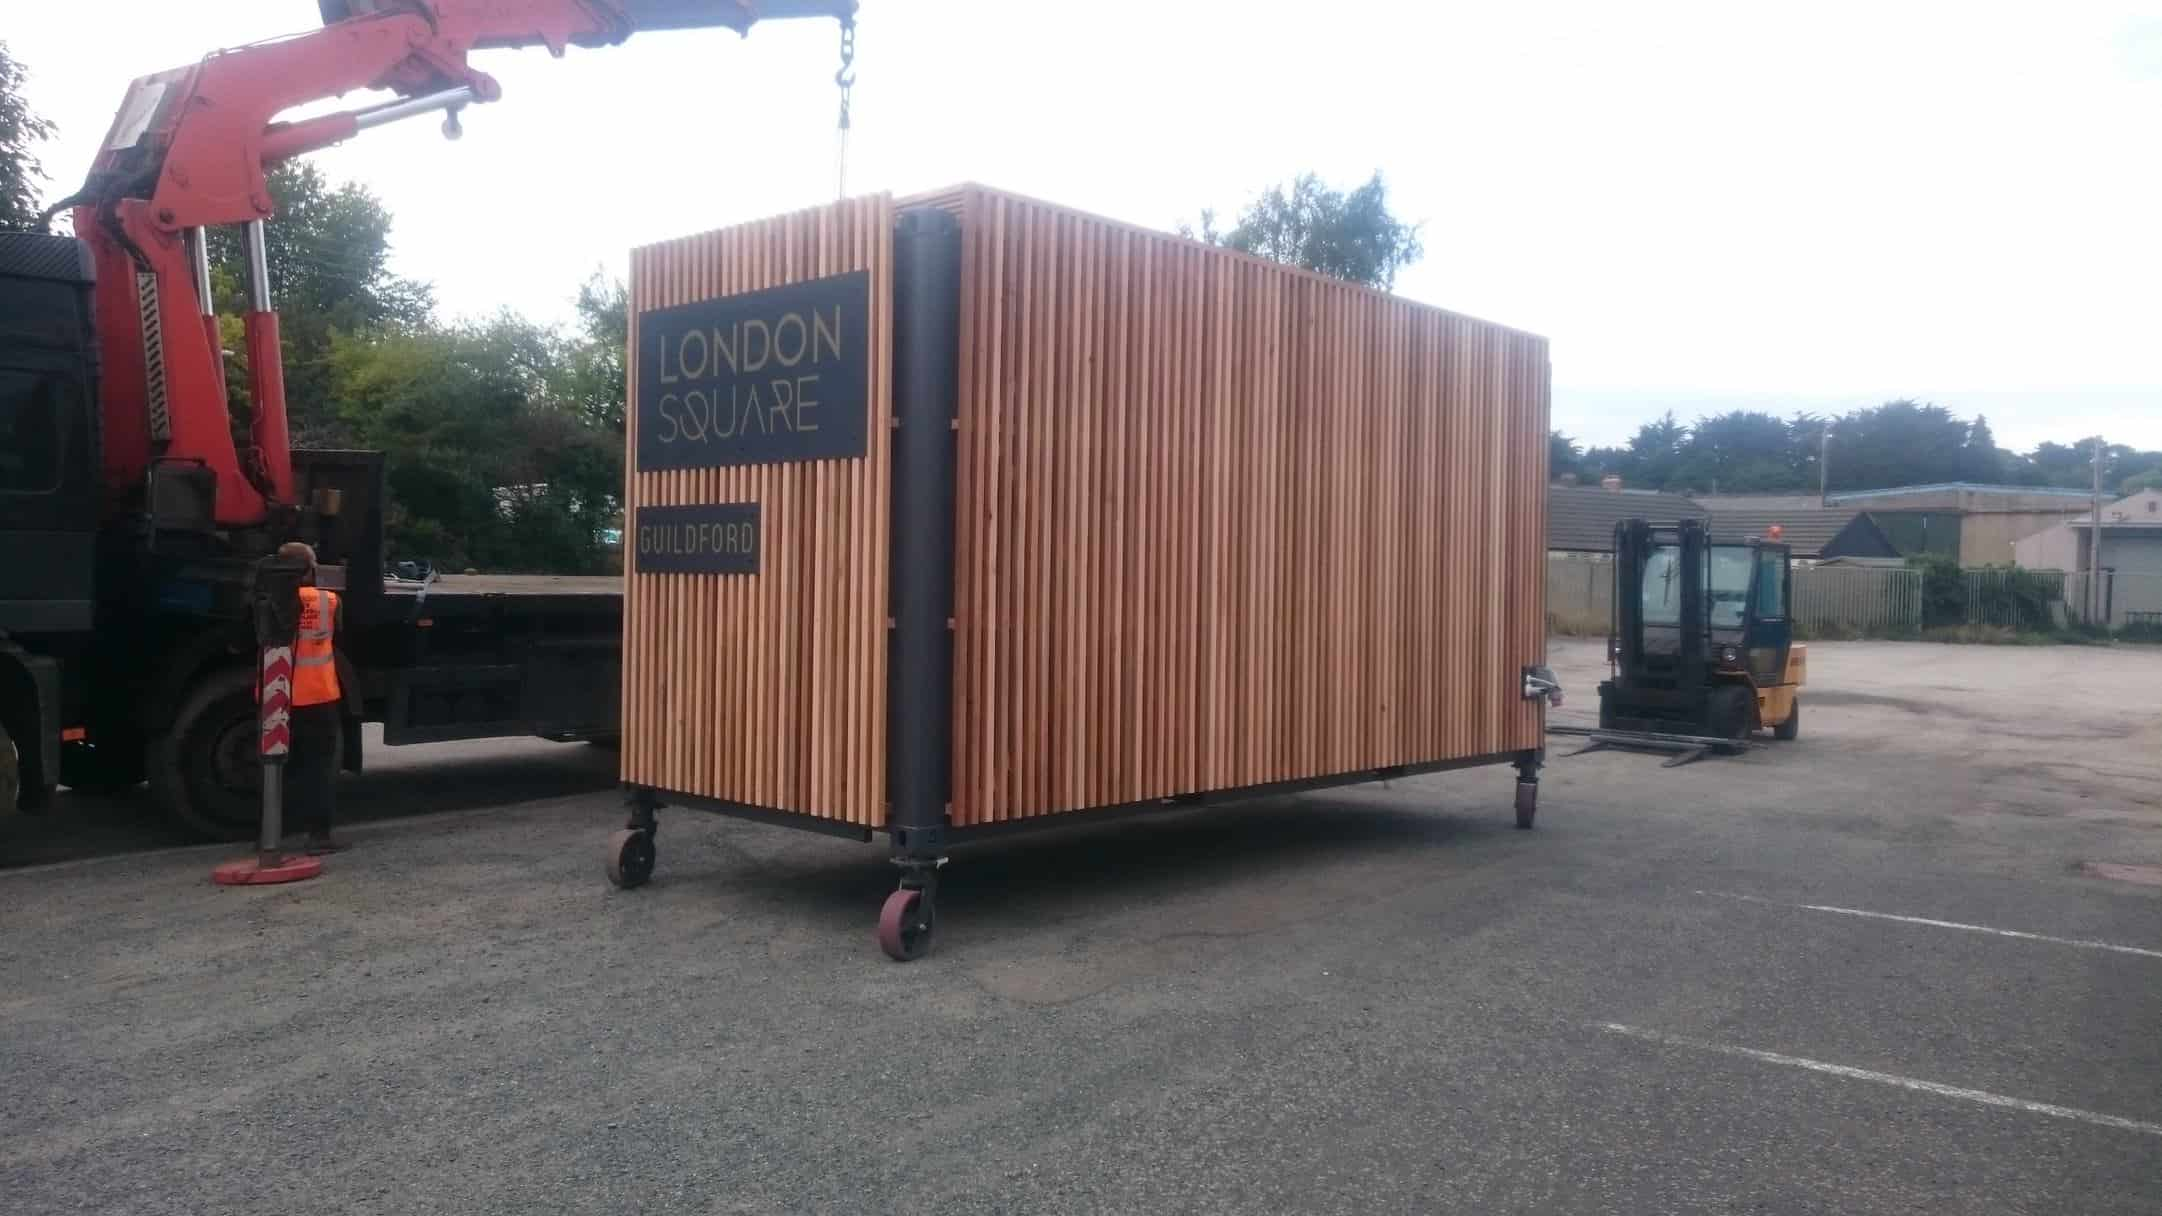 Shipping container conversion about to be transported